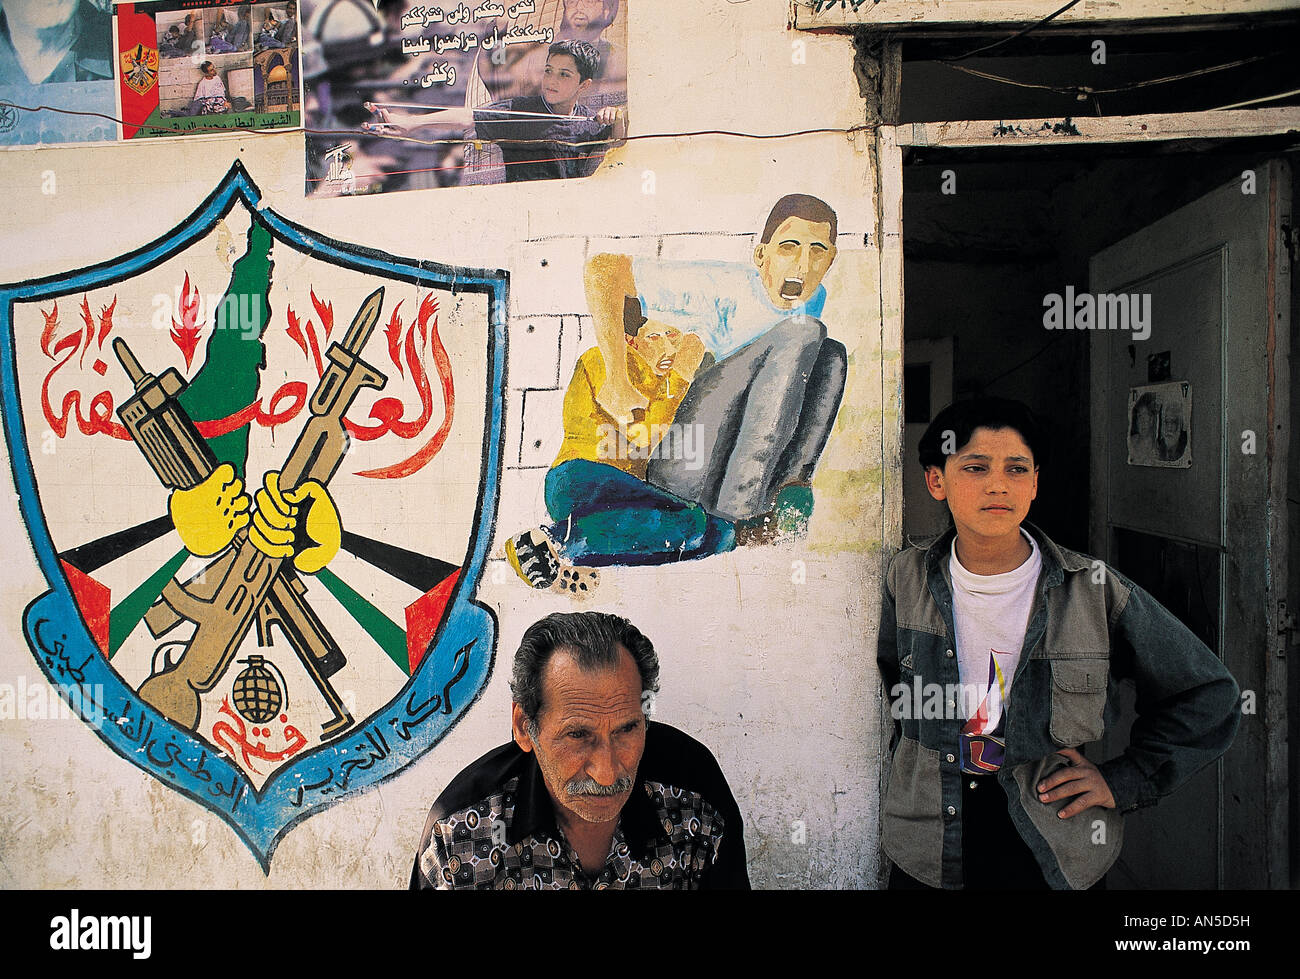 Palestinians living in Beirut with intifada paintings on the walls . - Stock Image